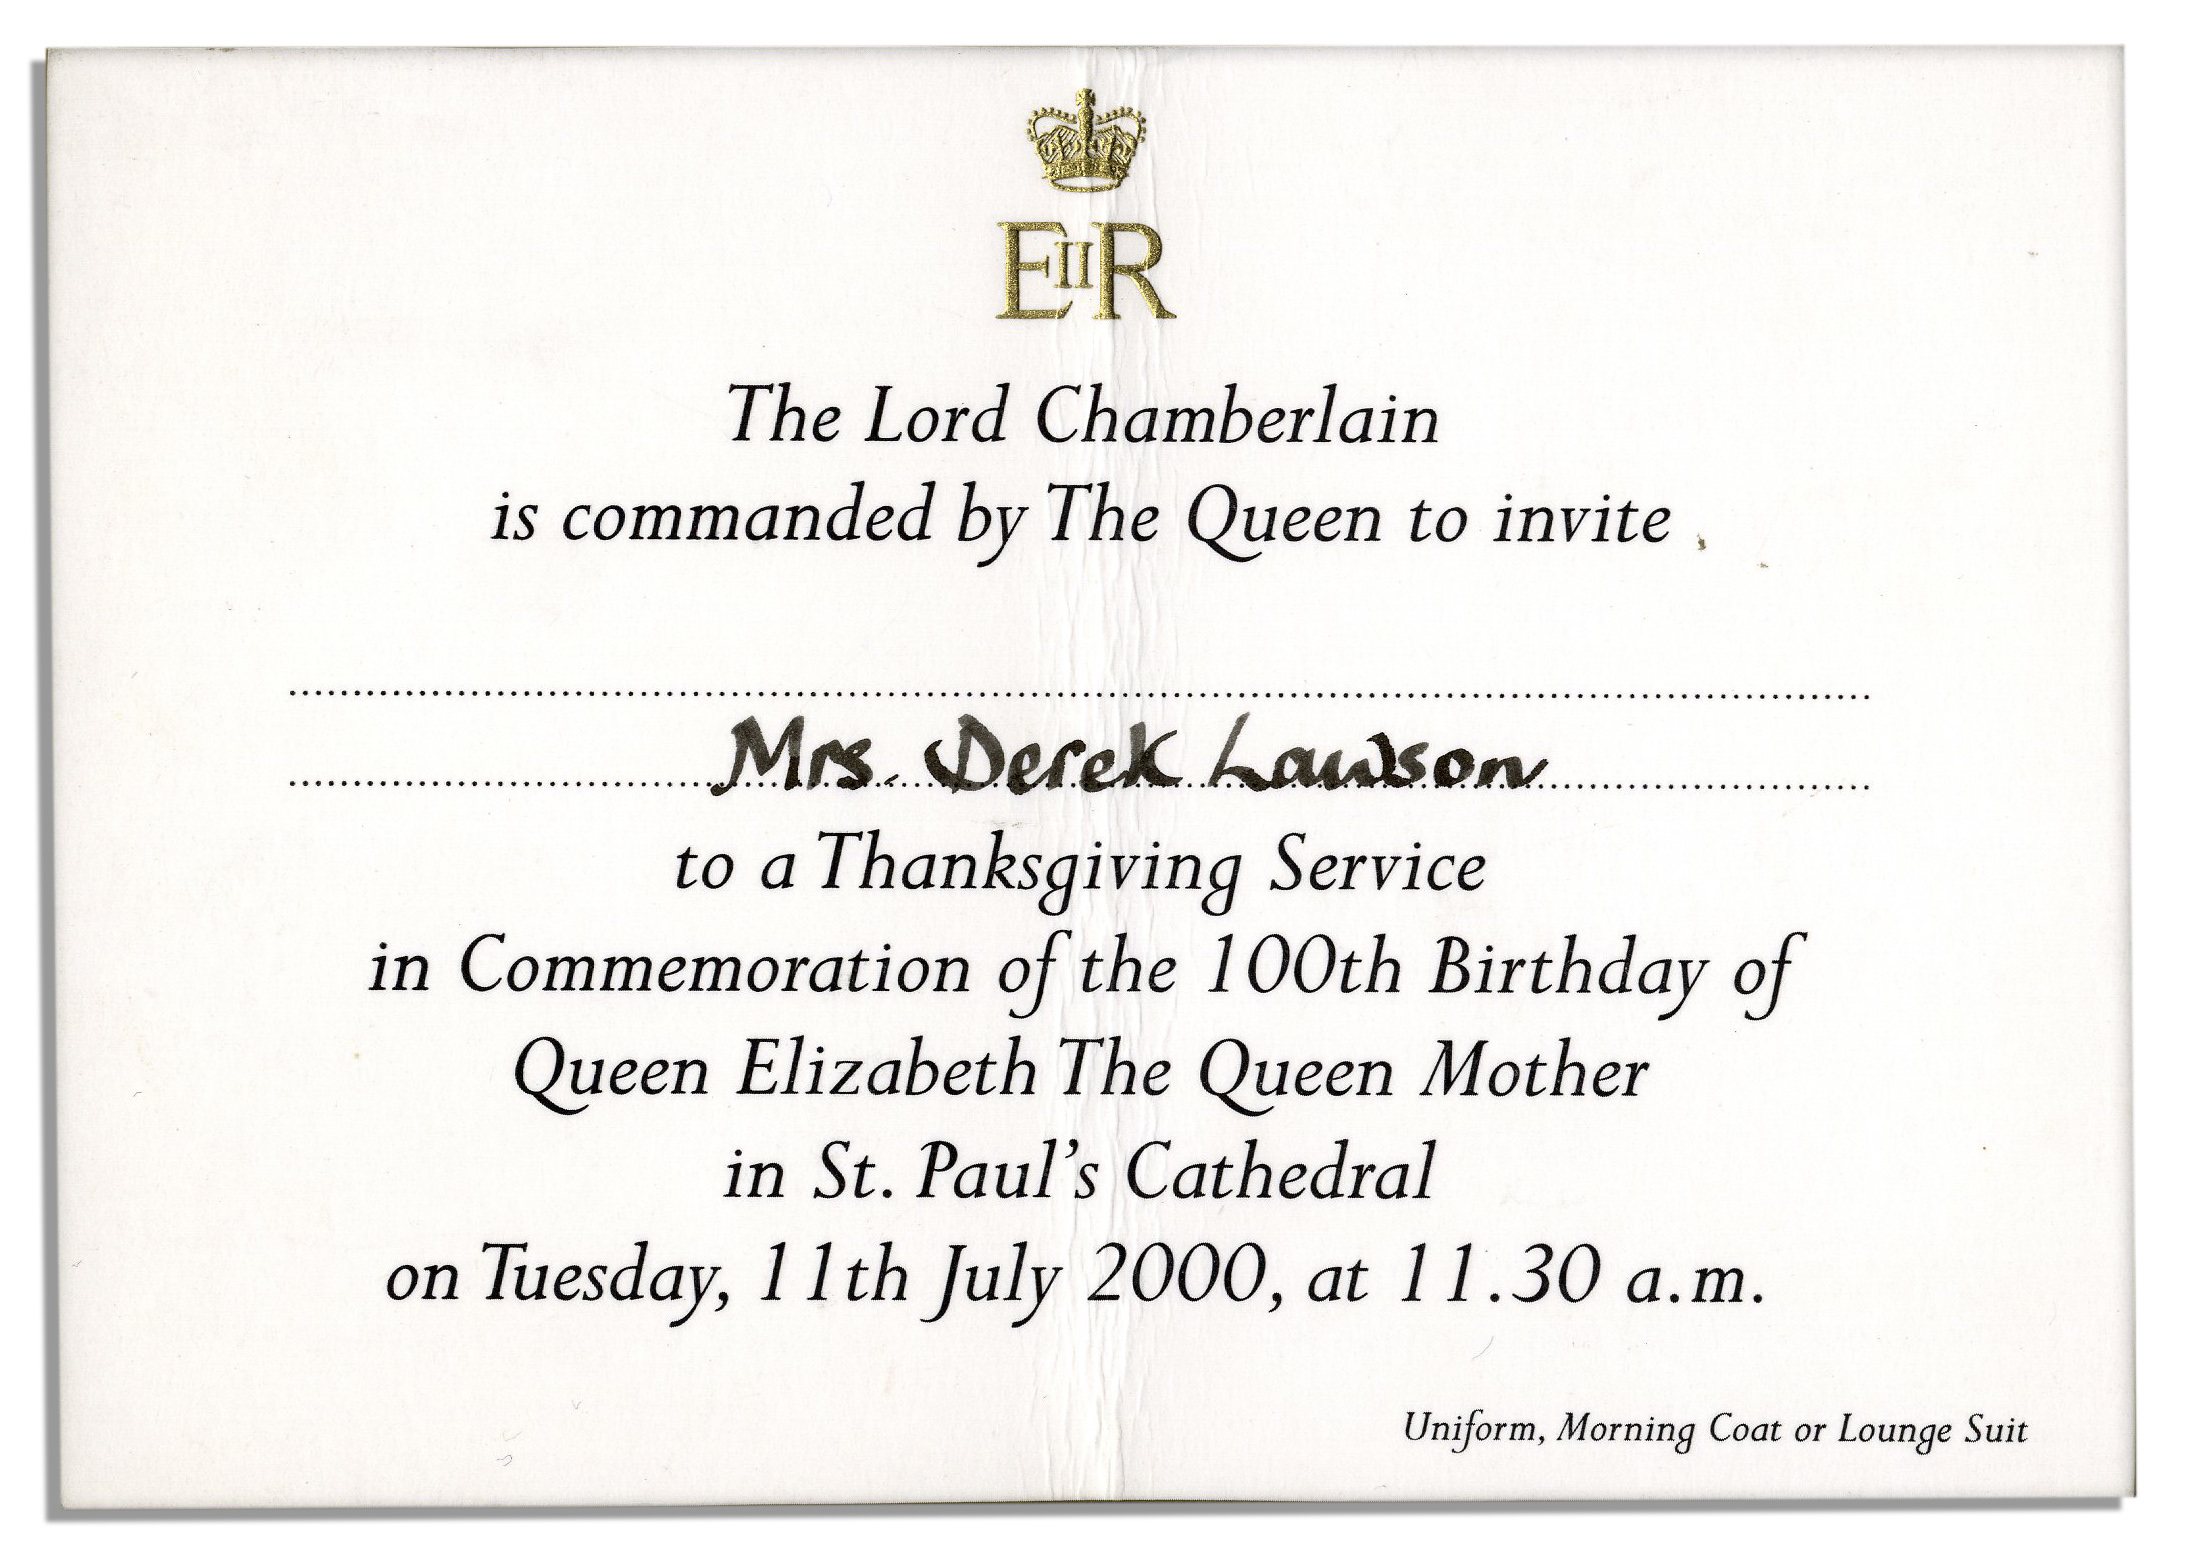 queen elizabeth the queen mothers 100th birthday thanksgiving service invitation